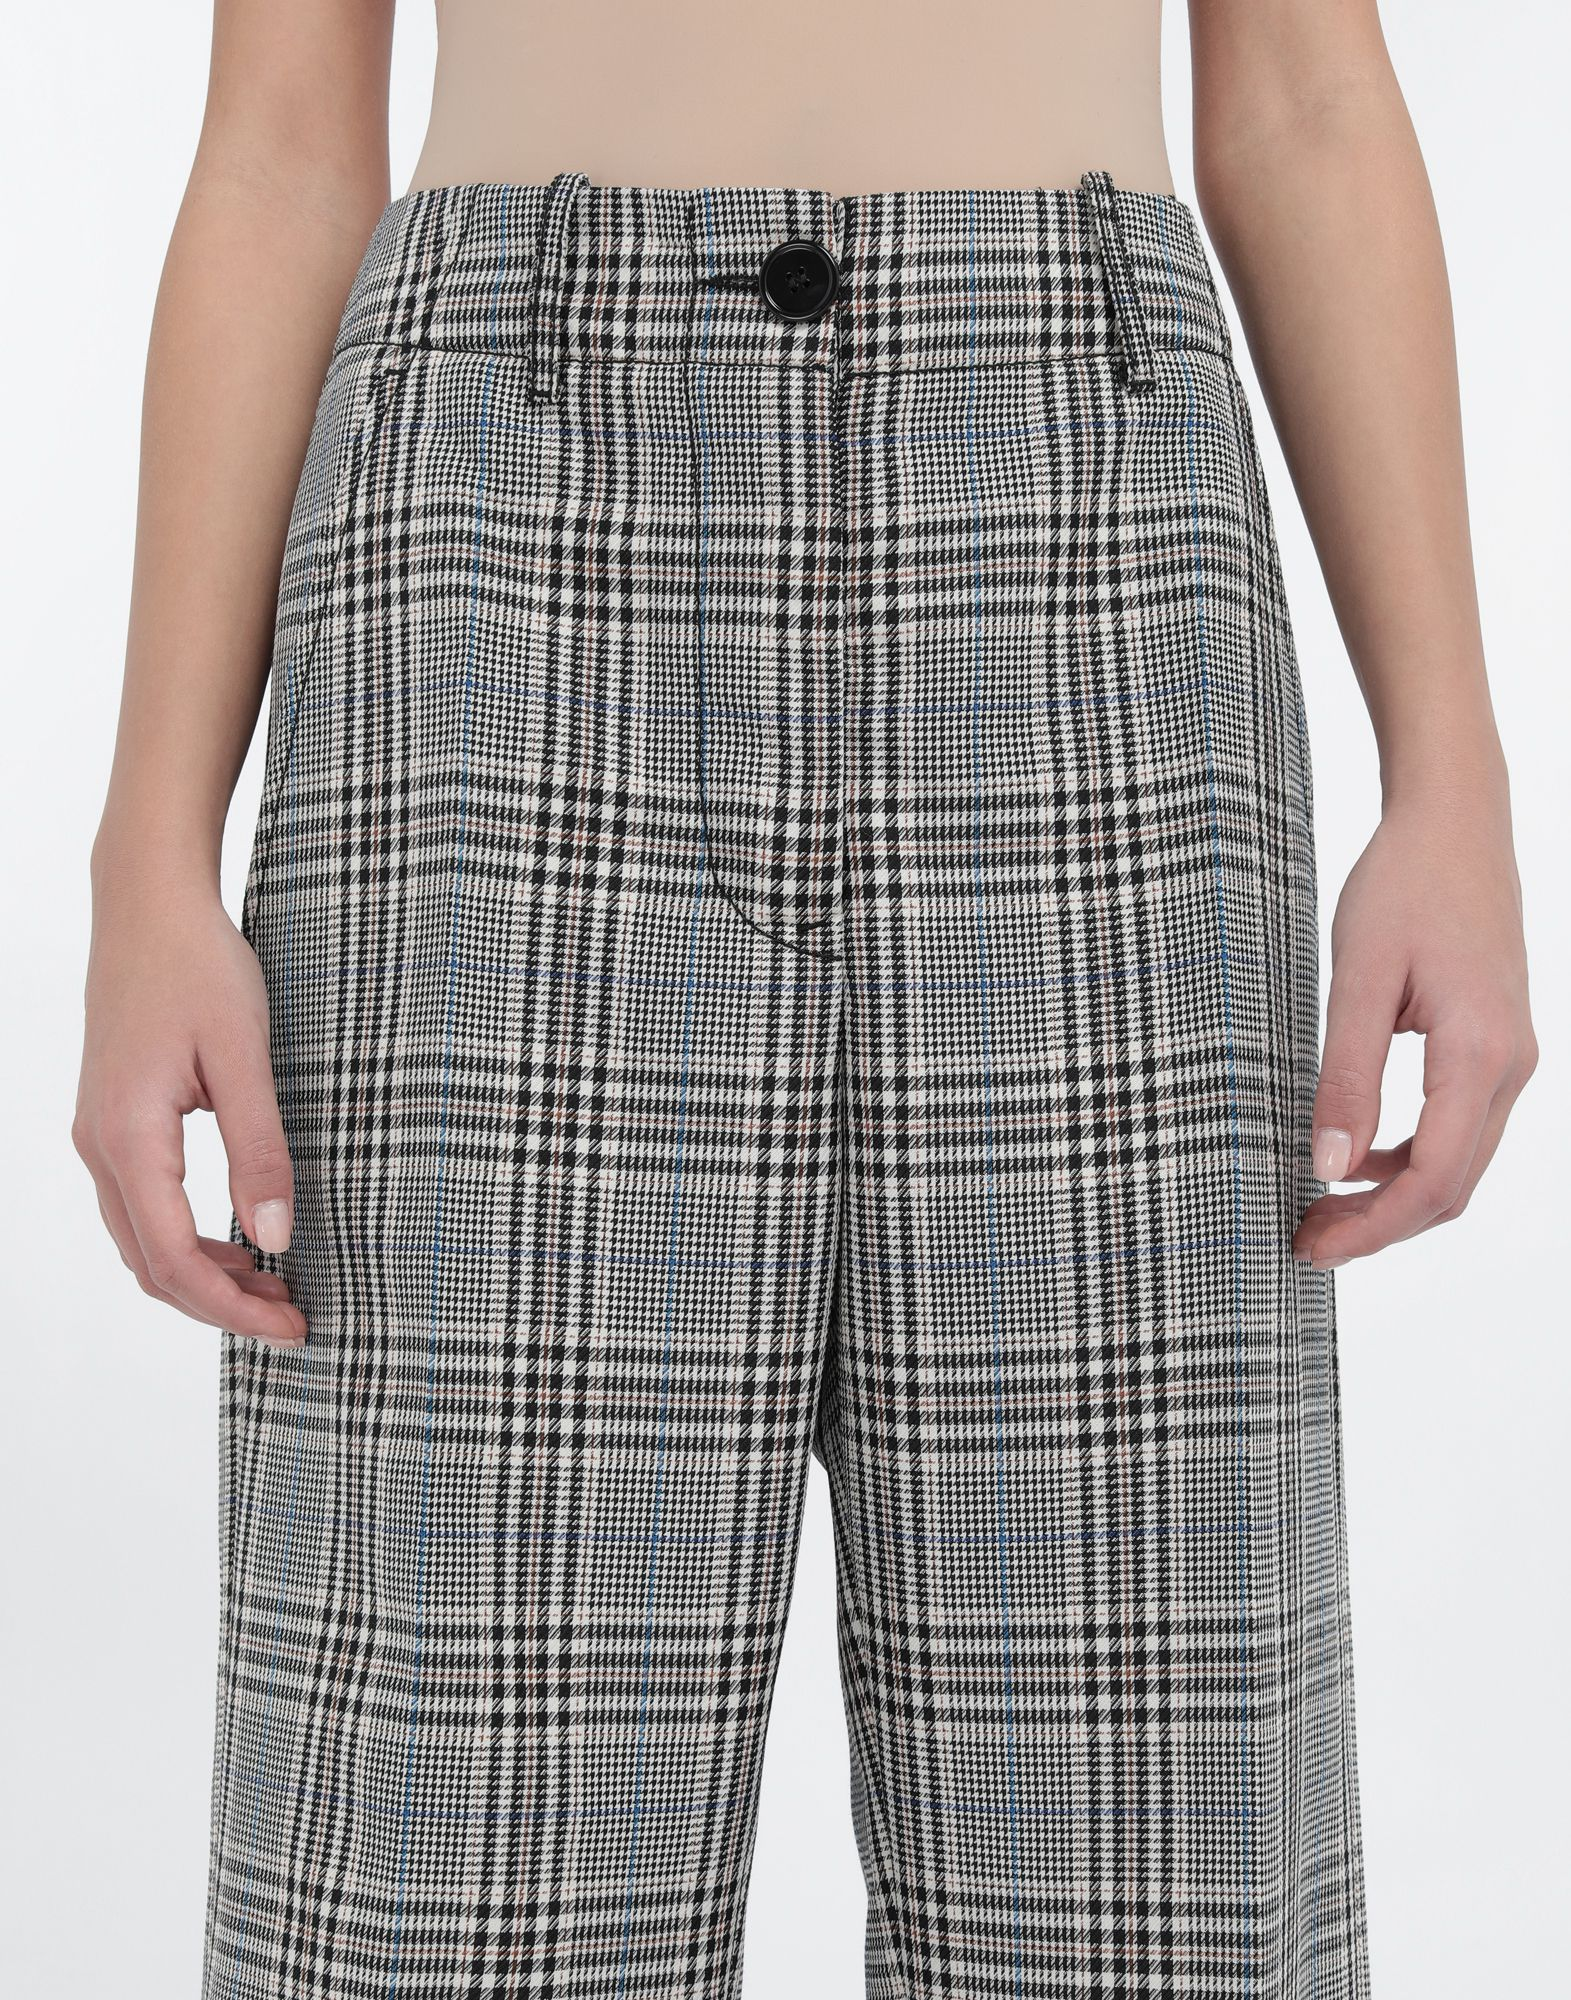 MM6 MAISON MARGIELA Checked wool-blend pants Casual pants Woman a